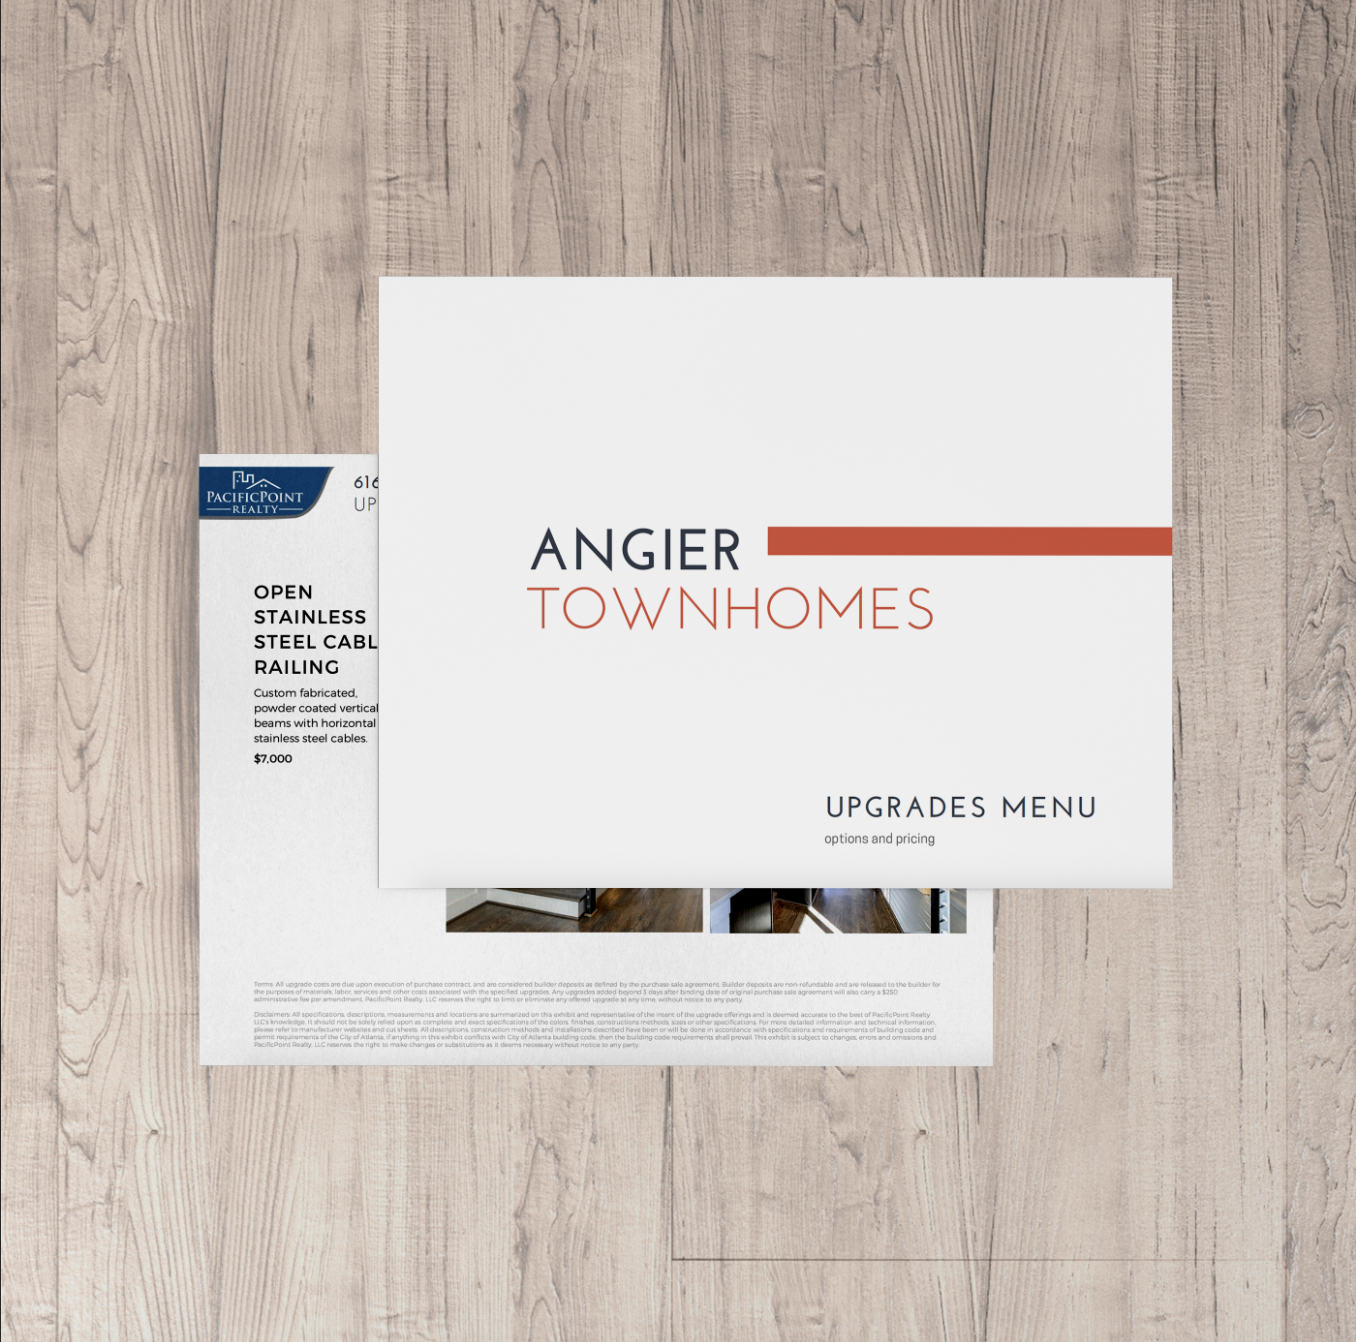 Amenities/Upgrades Sheet - Cover Design, Upgrades page(s), Agent/Contact information. $50-$100